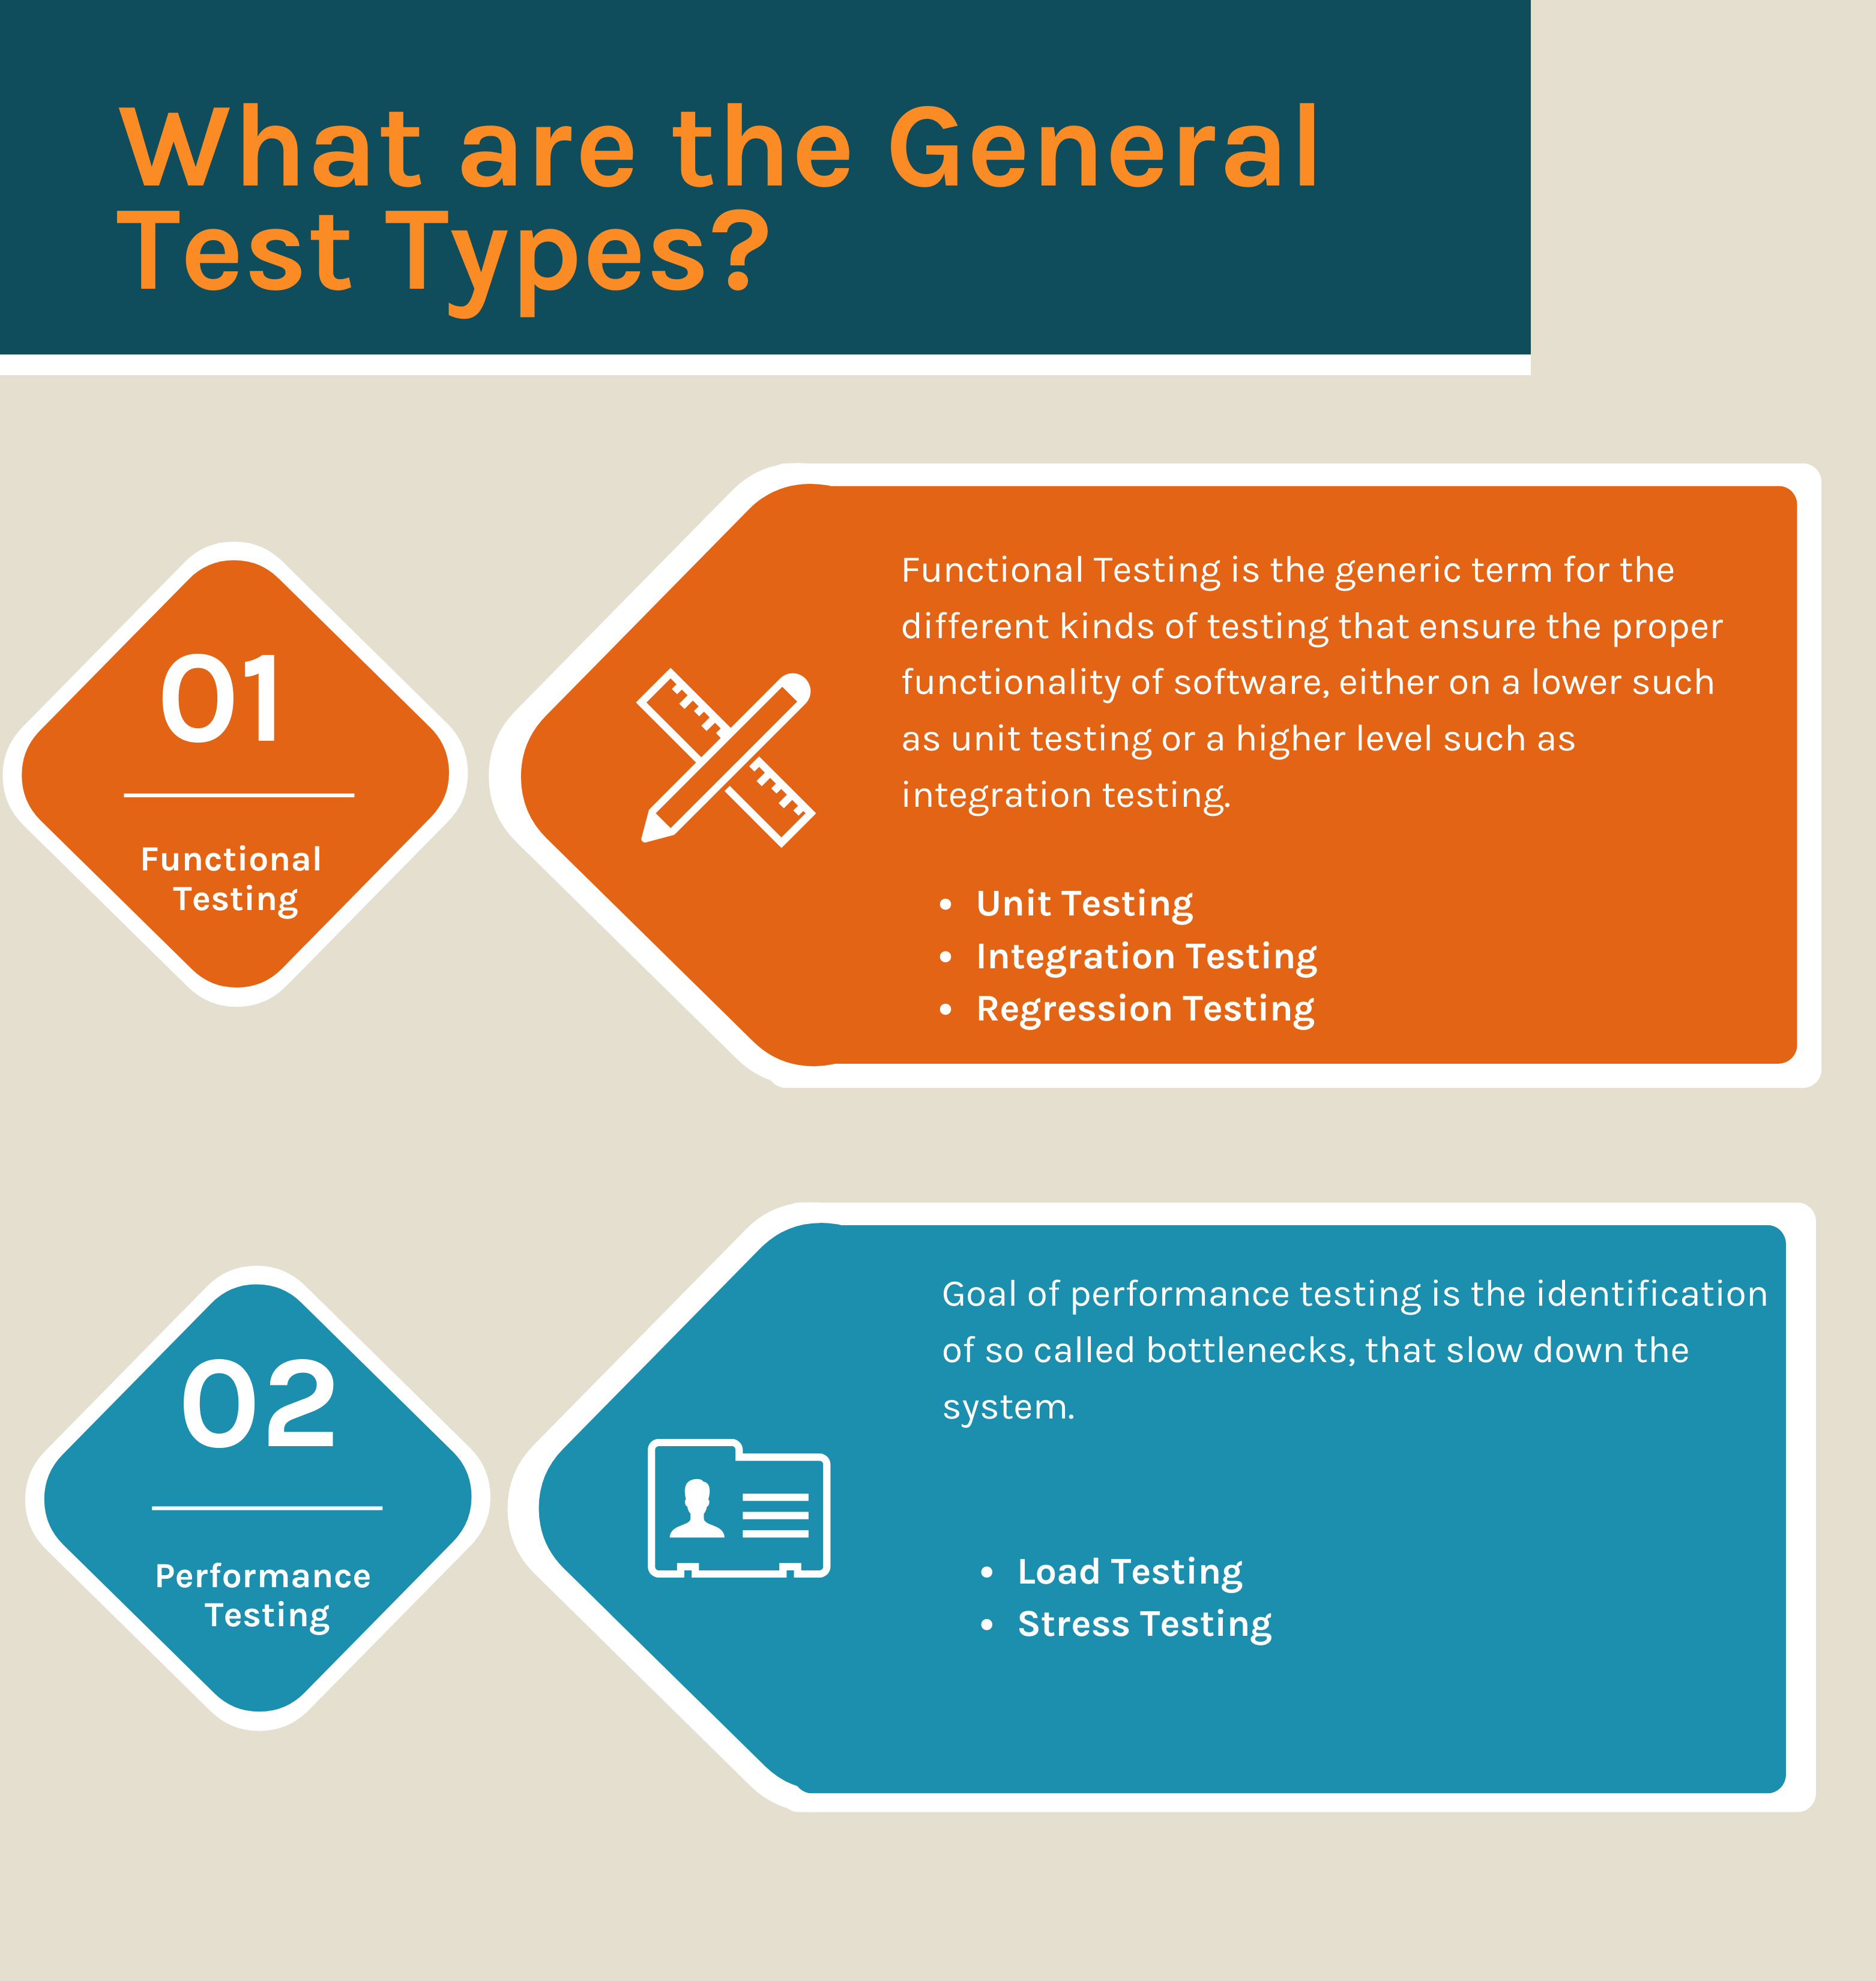 What are the General Test Types